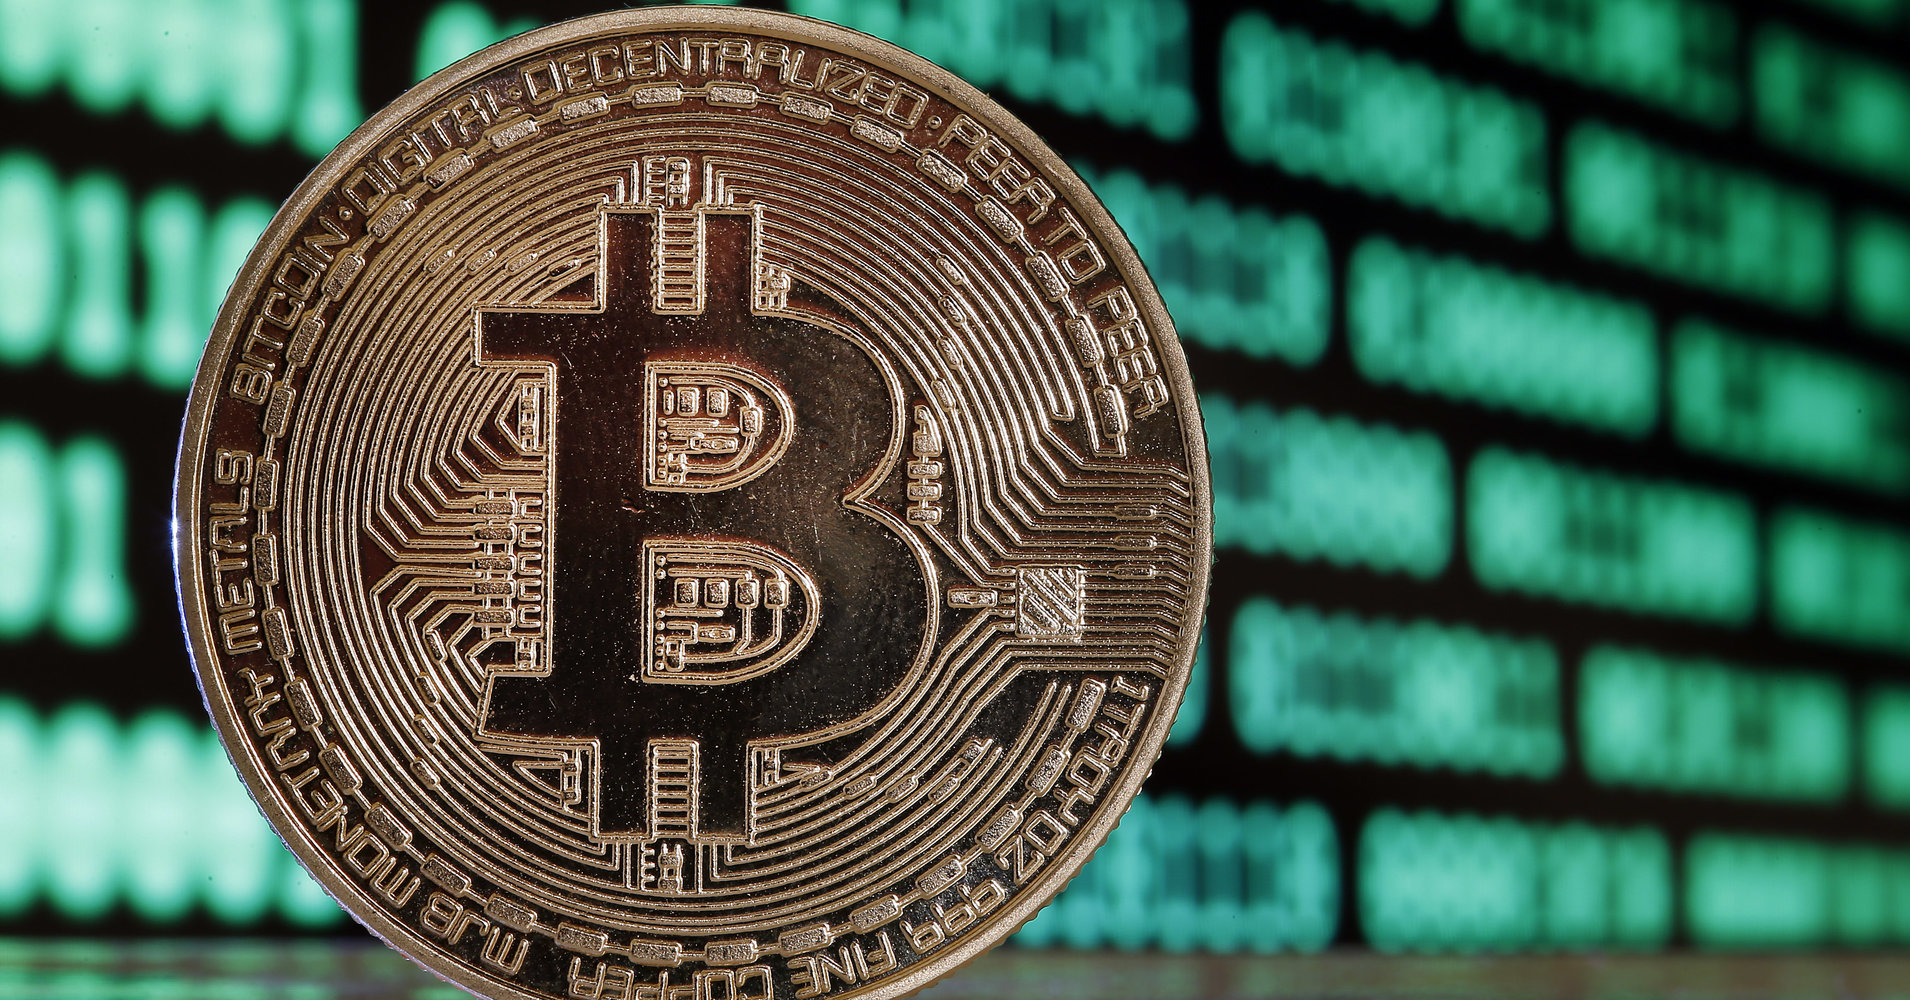 Bitcoin Plummets On Fears Of Regulatory Crackdown, Hits 4-Week Low